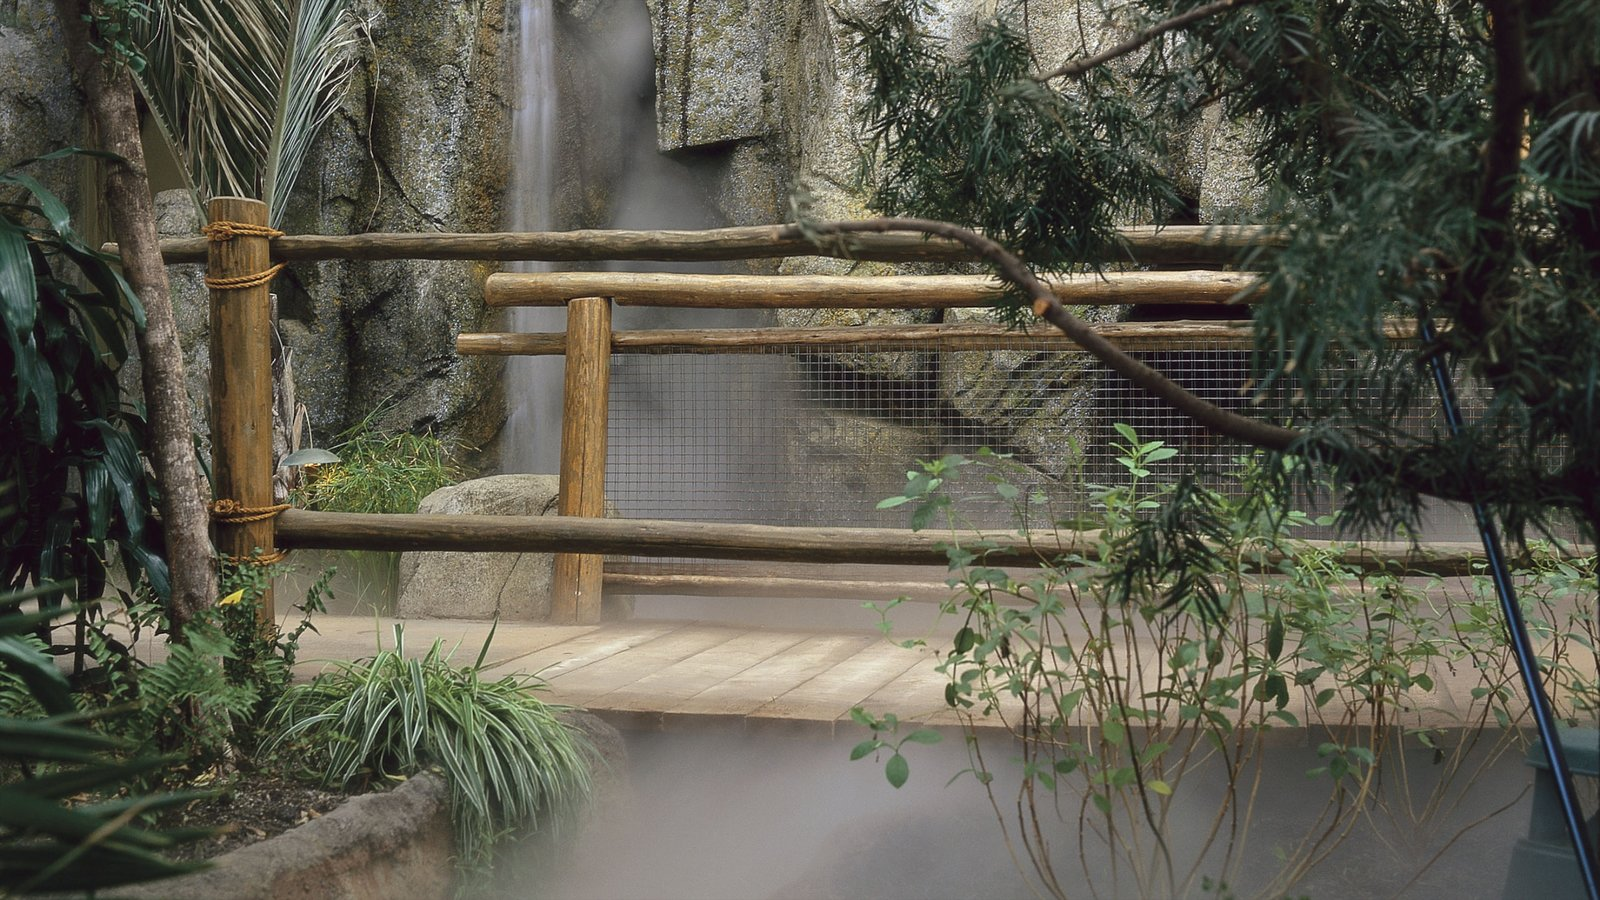 Calgary Zoo showing mist or fog and zoo animals